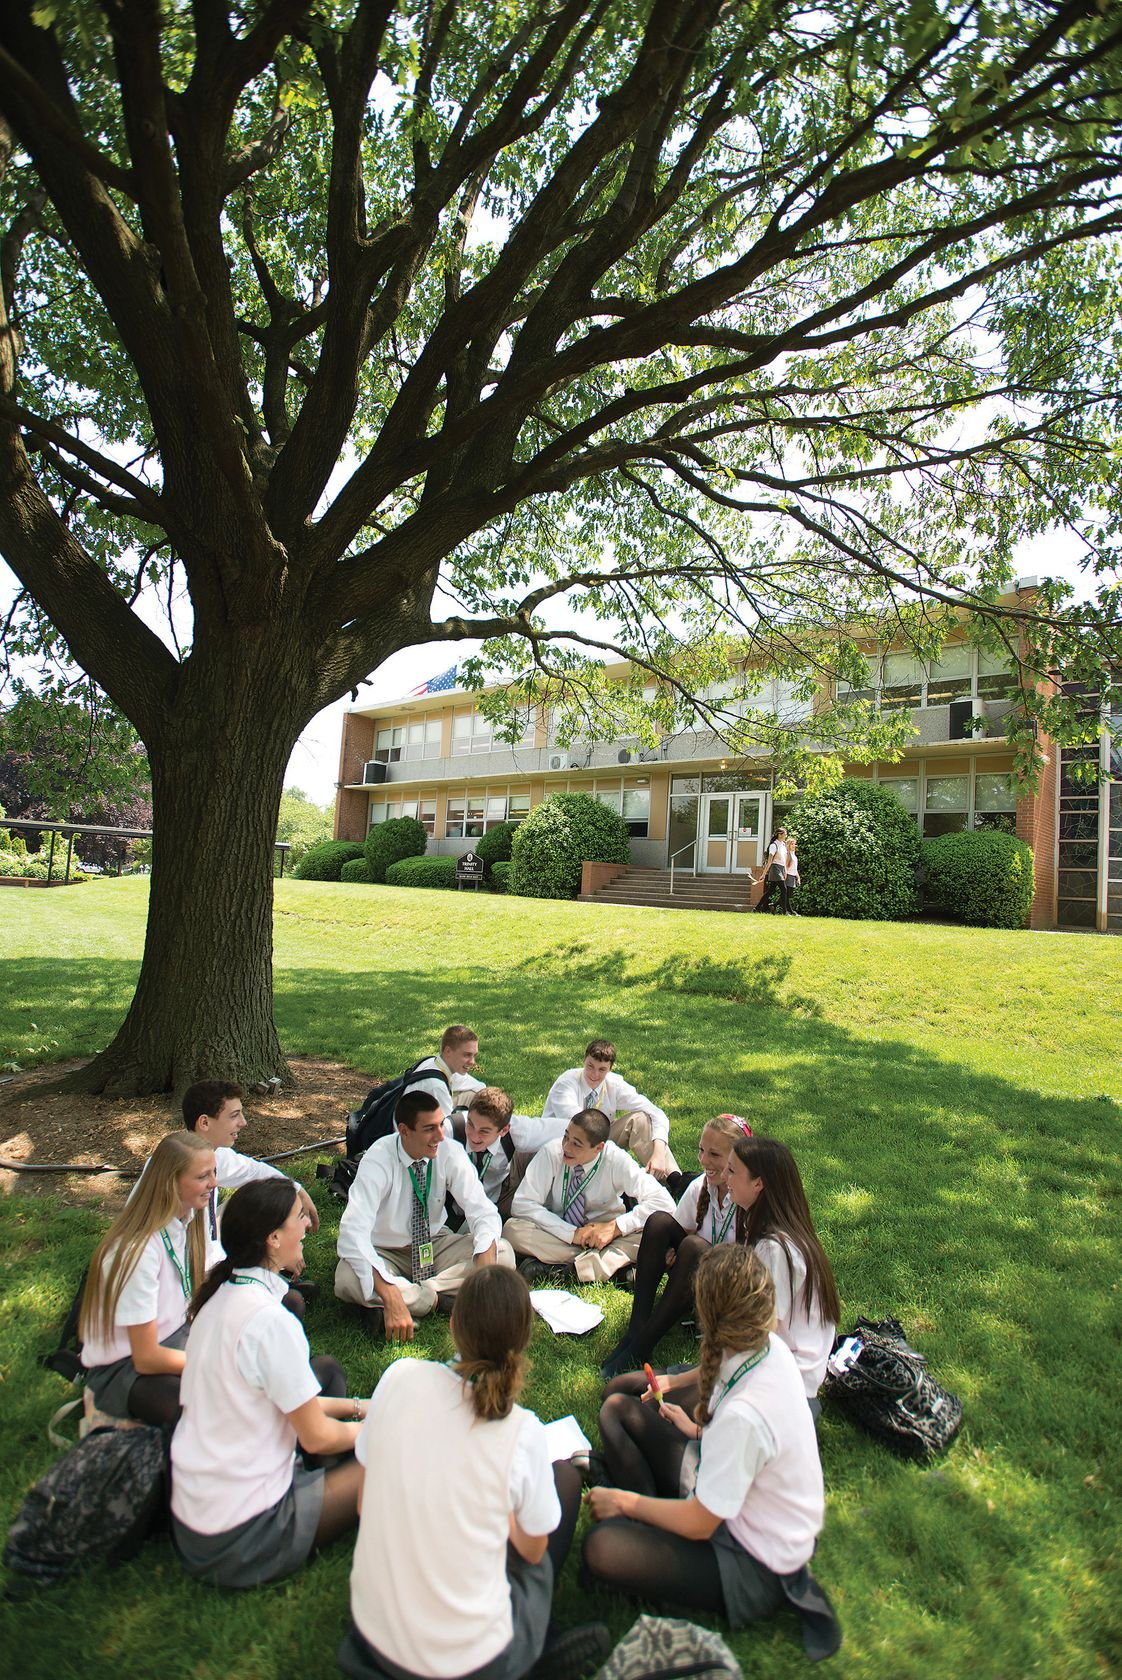 Bishop Eustace Prep School Photo #1 - A group of students enjoying our college style campus.